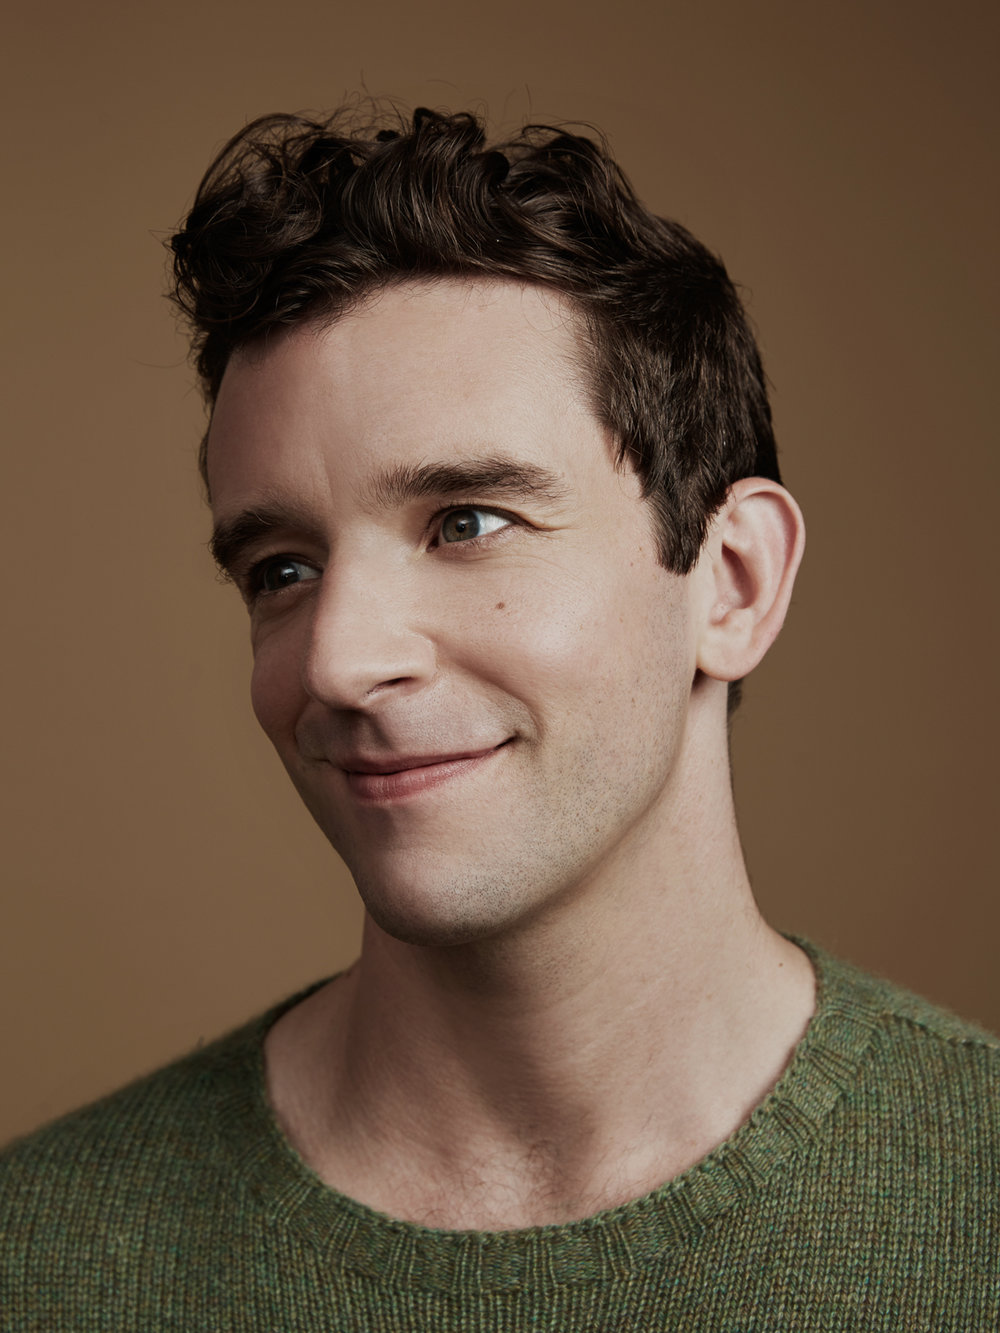 070617_OUT_MichaelUrie20408.jpg